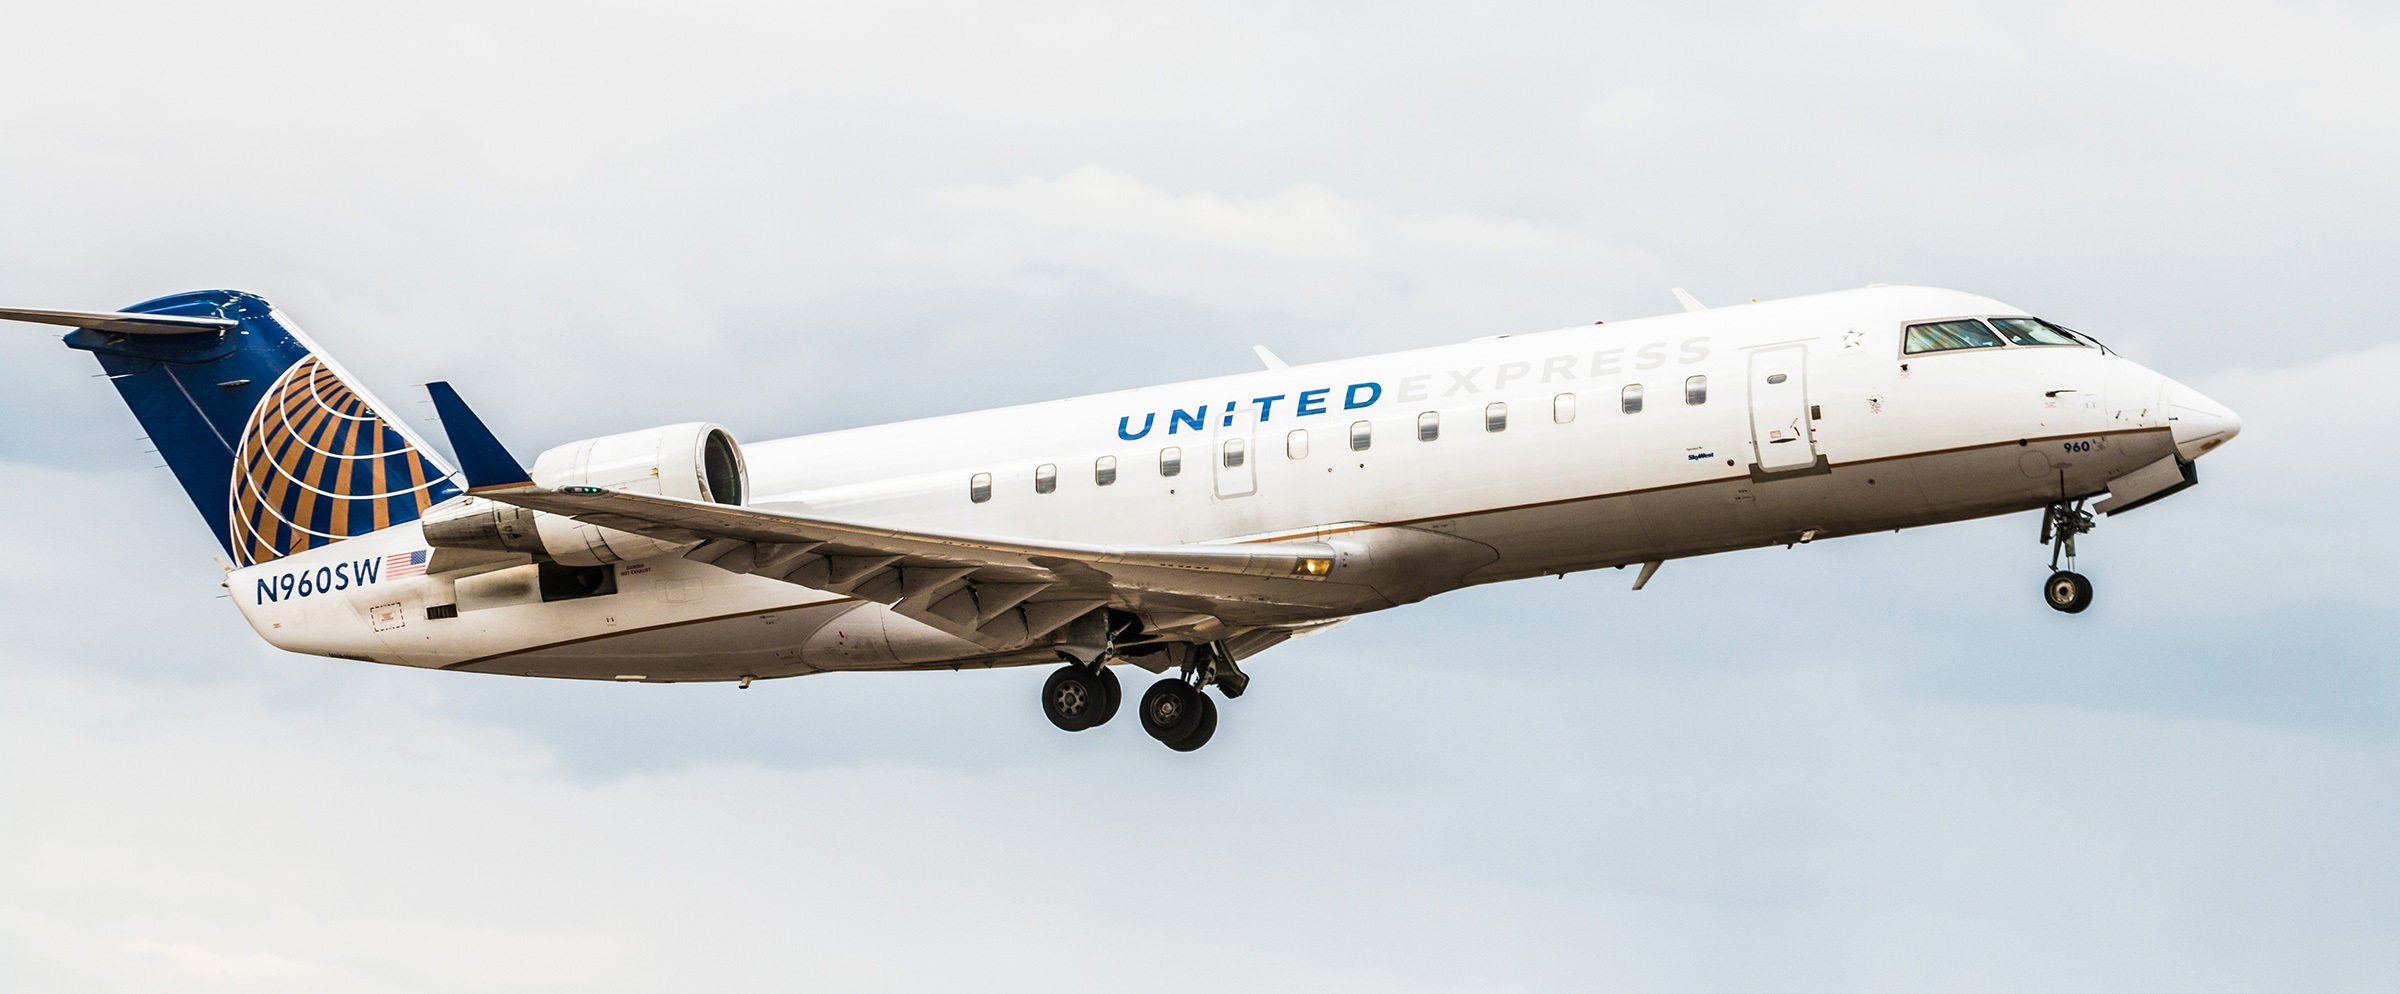 United Airlines Jet Flying